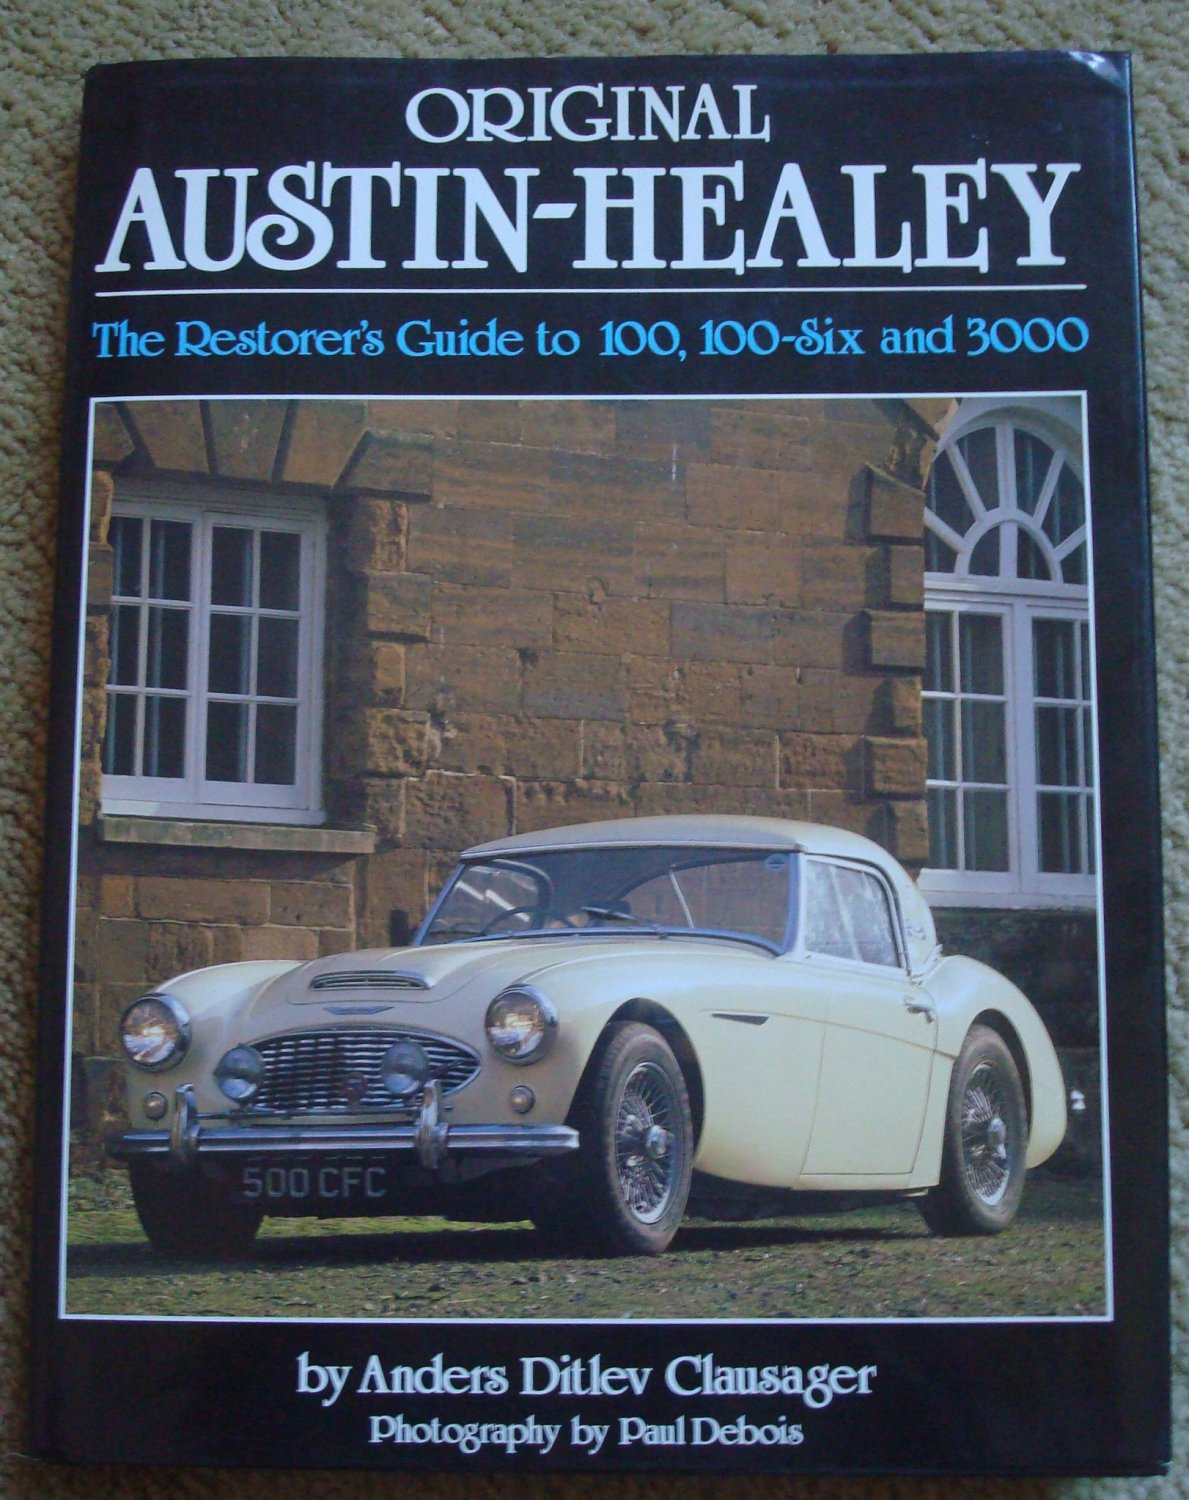 Original Austin-Healey: The Restorer's Guide to 100, 100-Six, and 3000